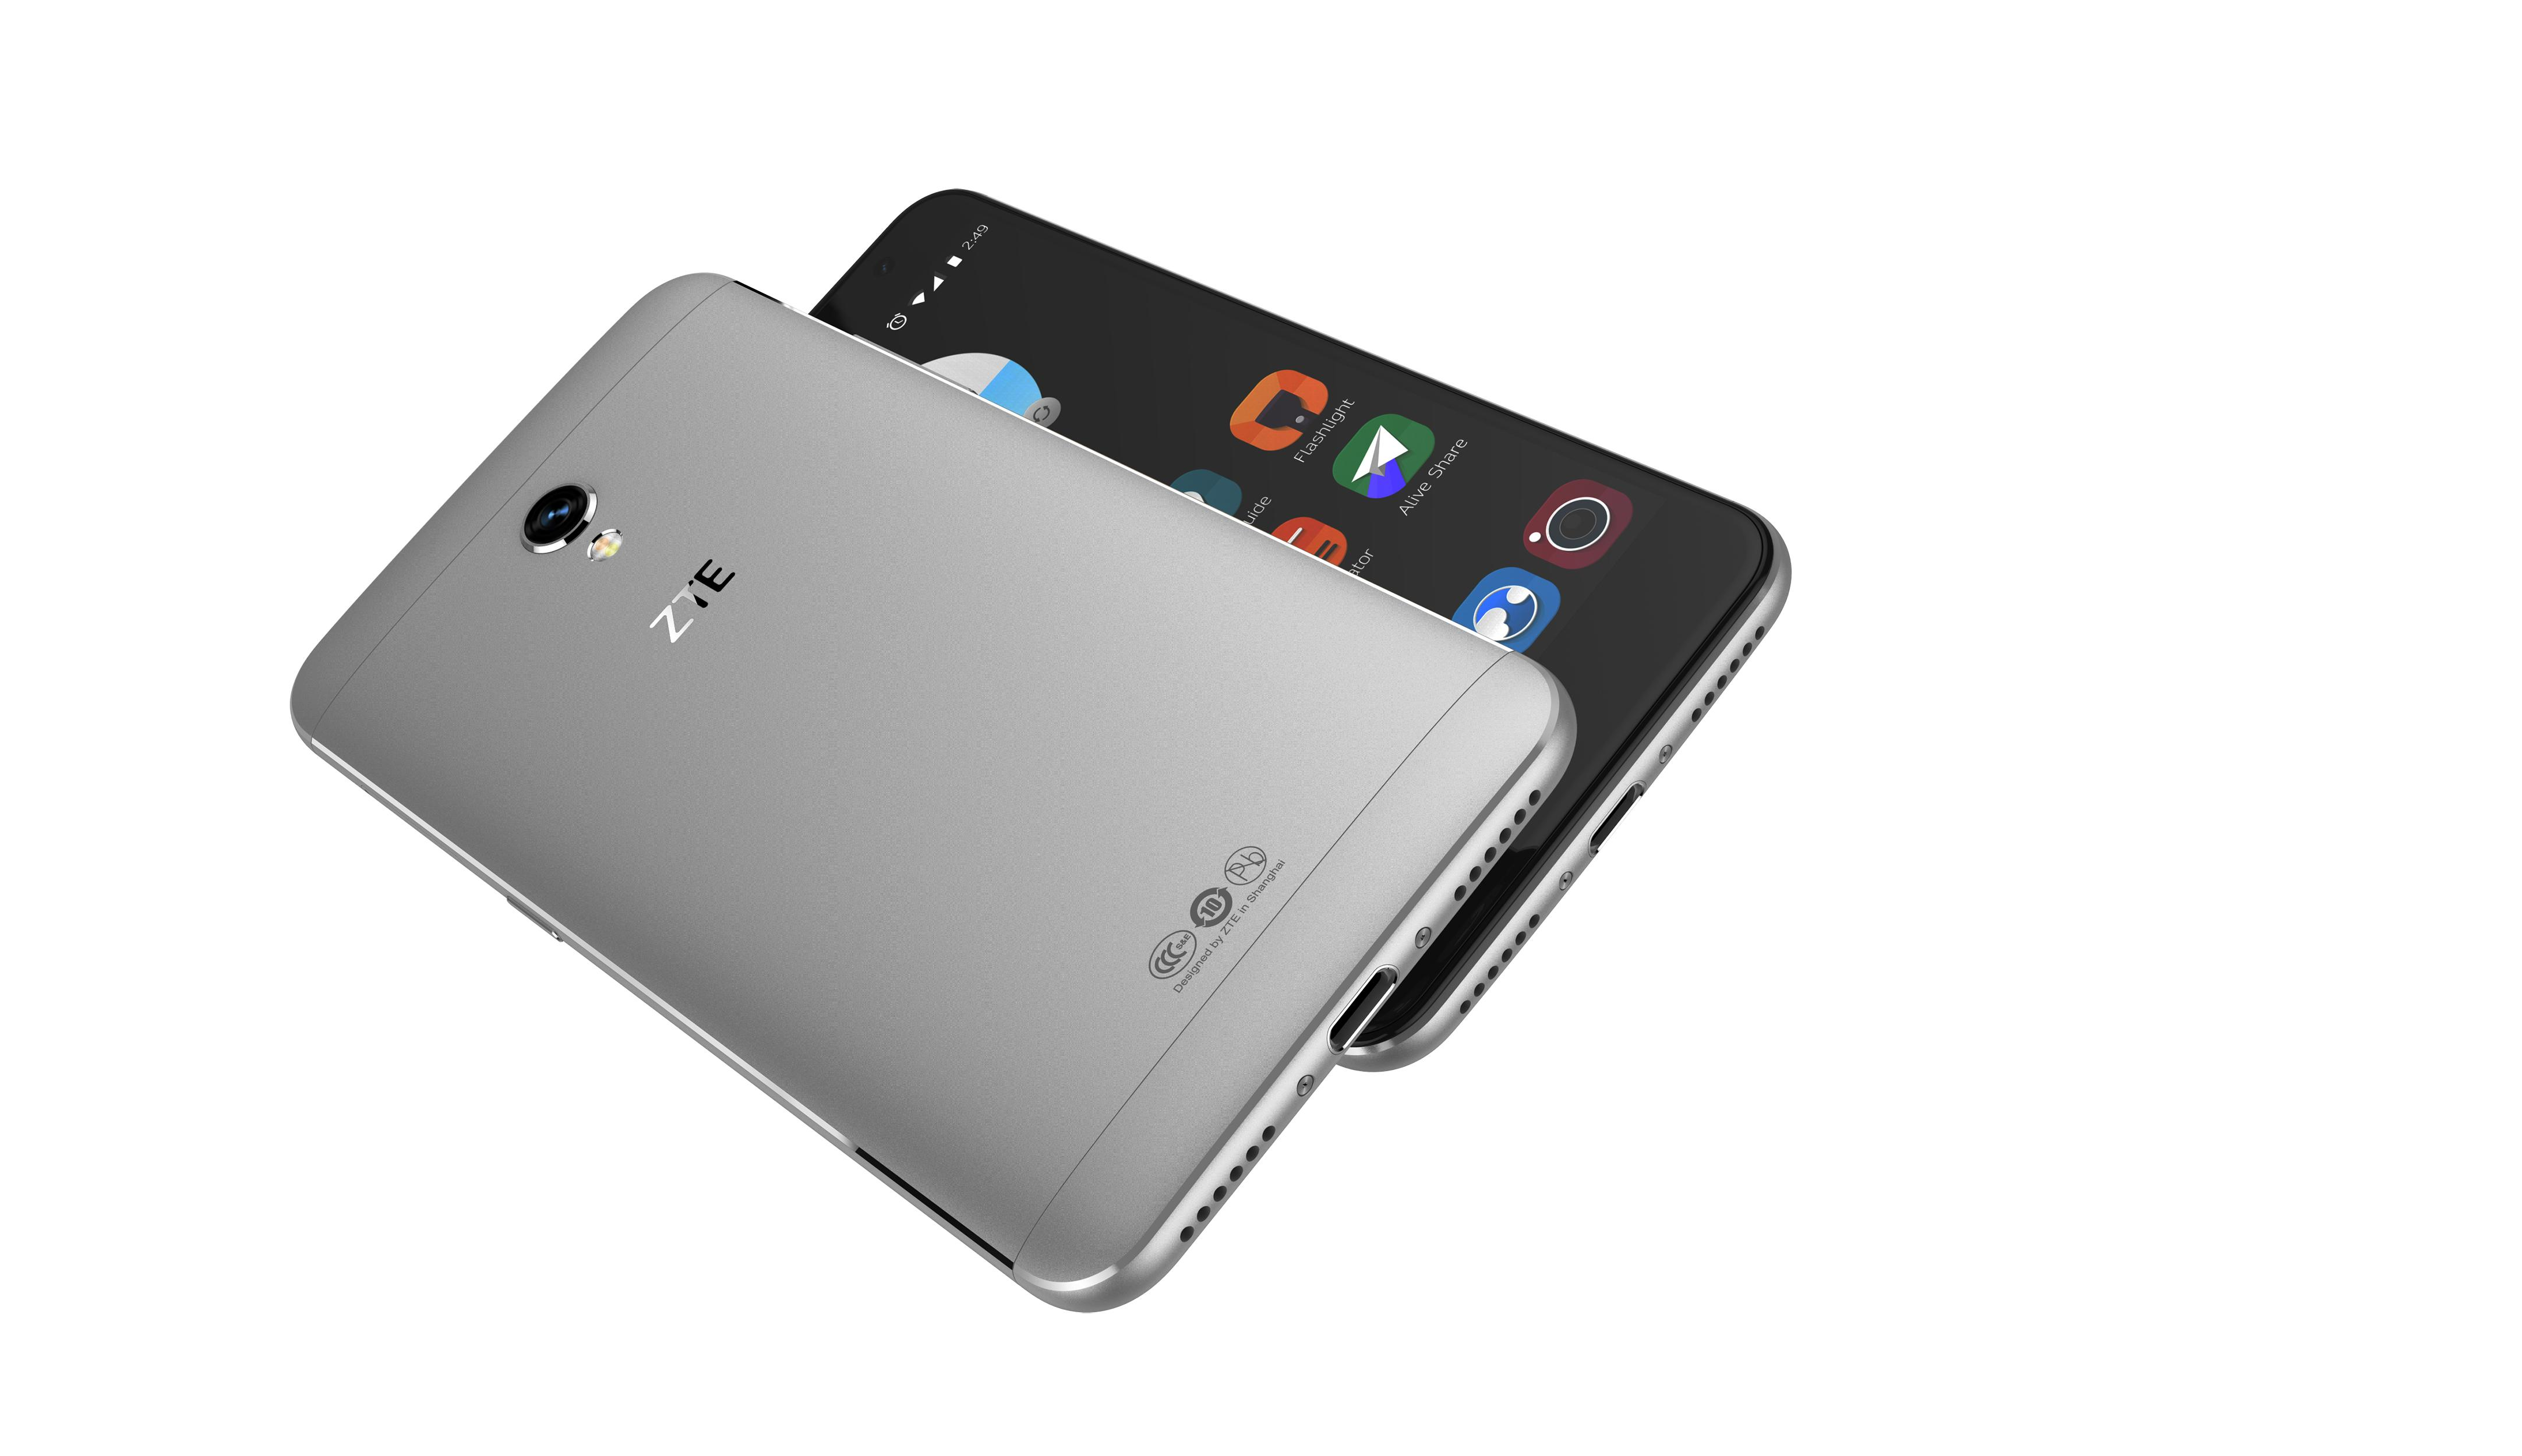 zte v7 caracteristicas used its subcontractor